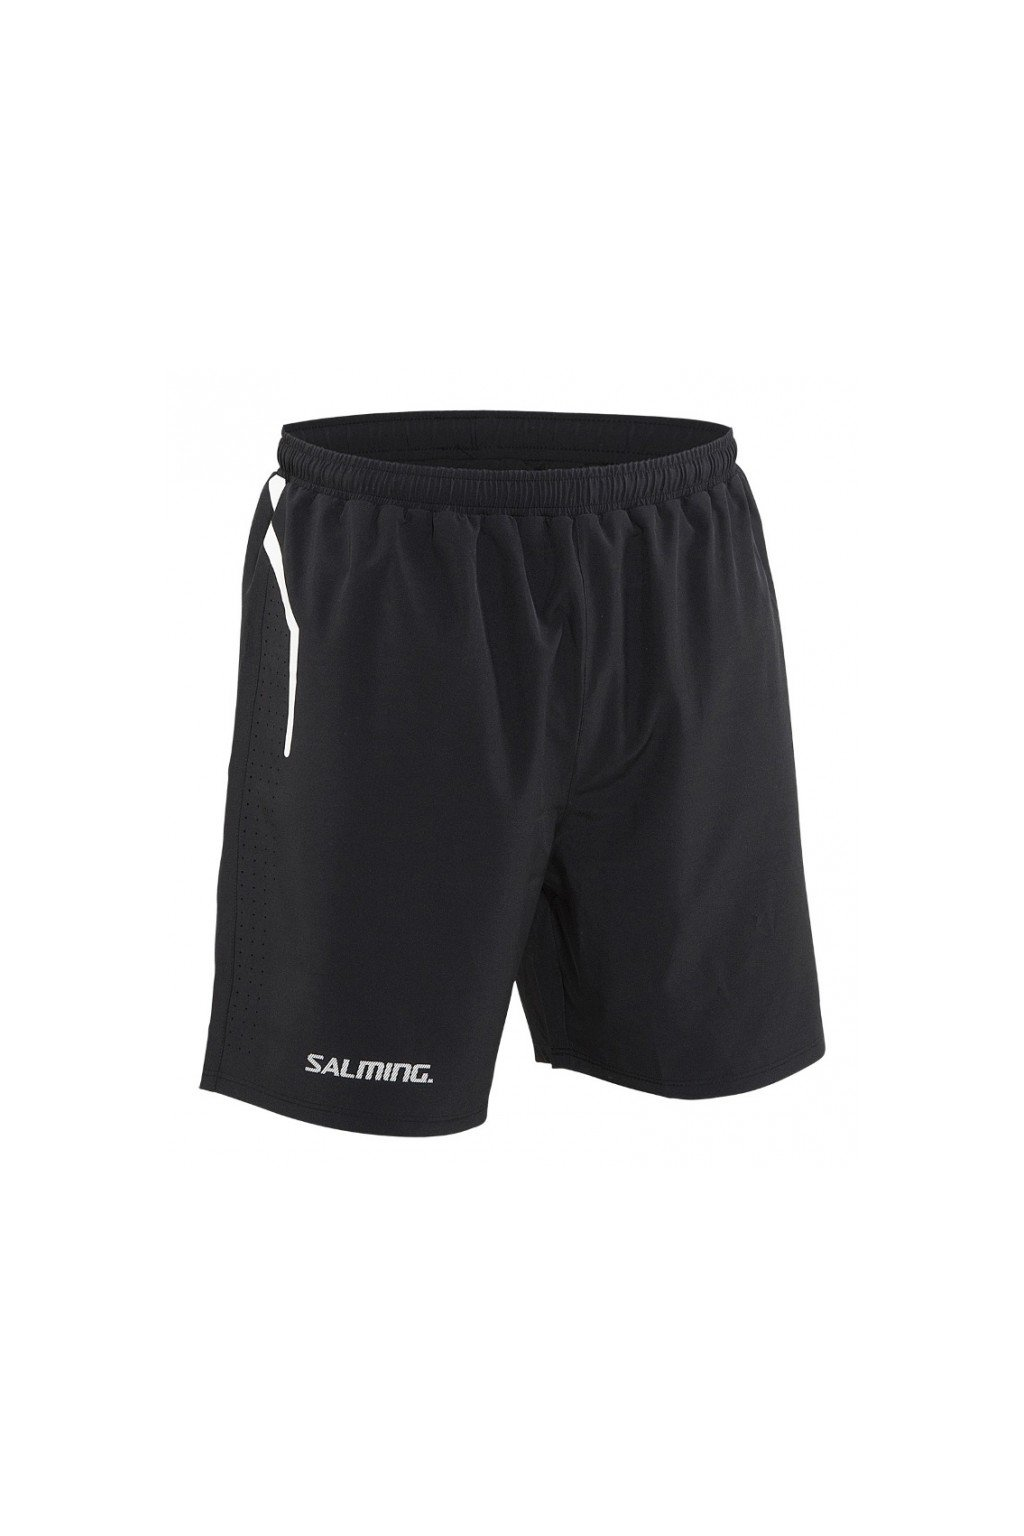 salming pro training shorts black xxl